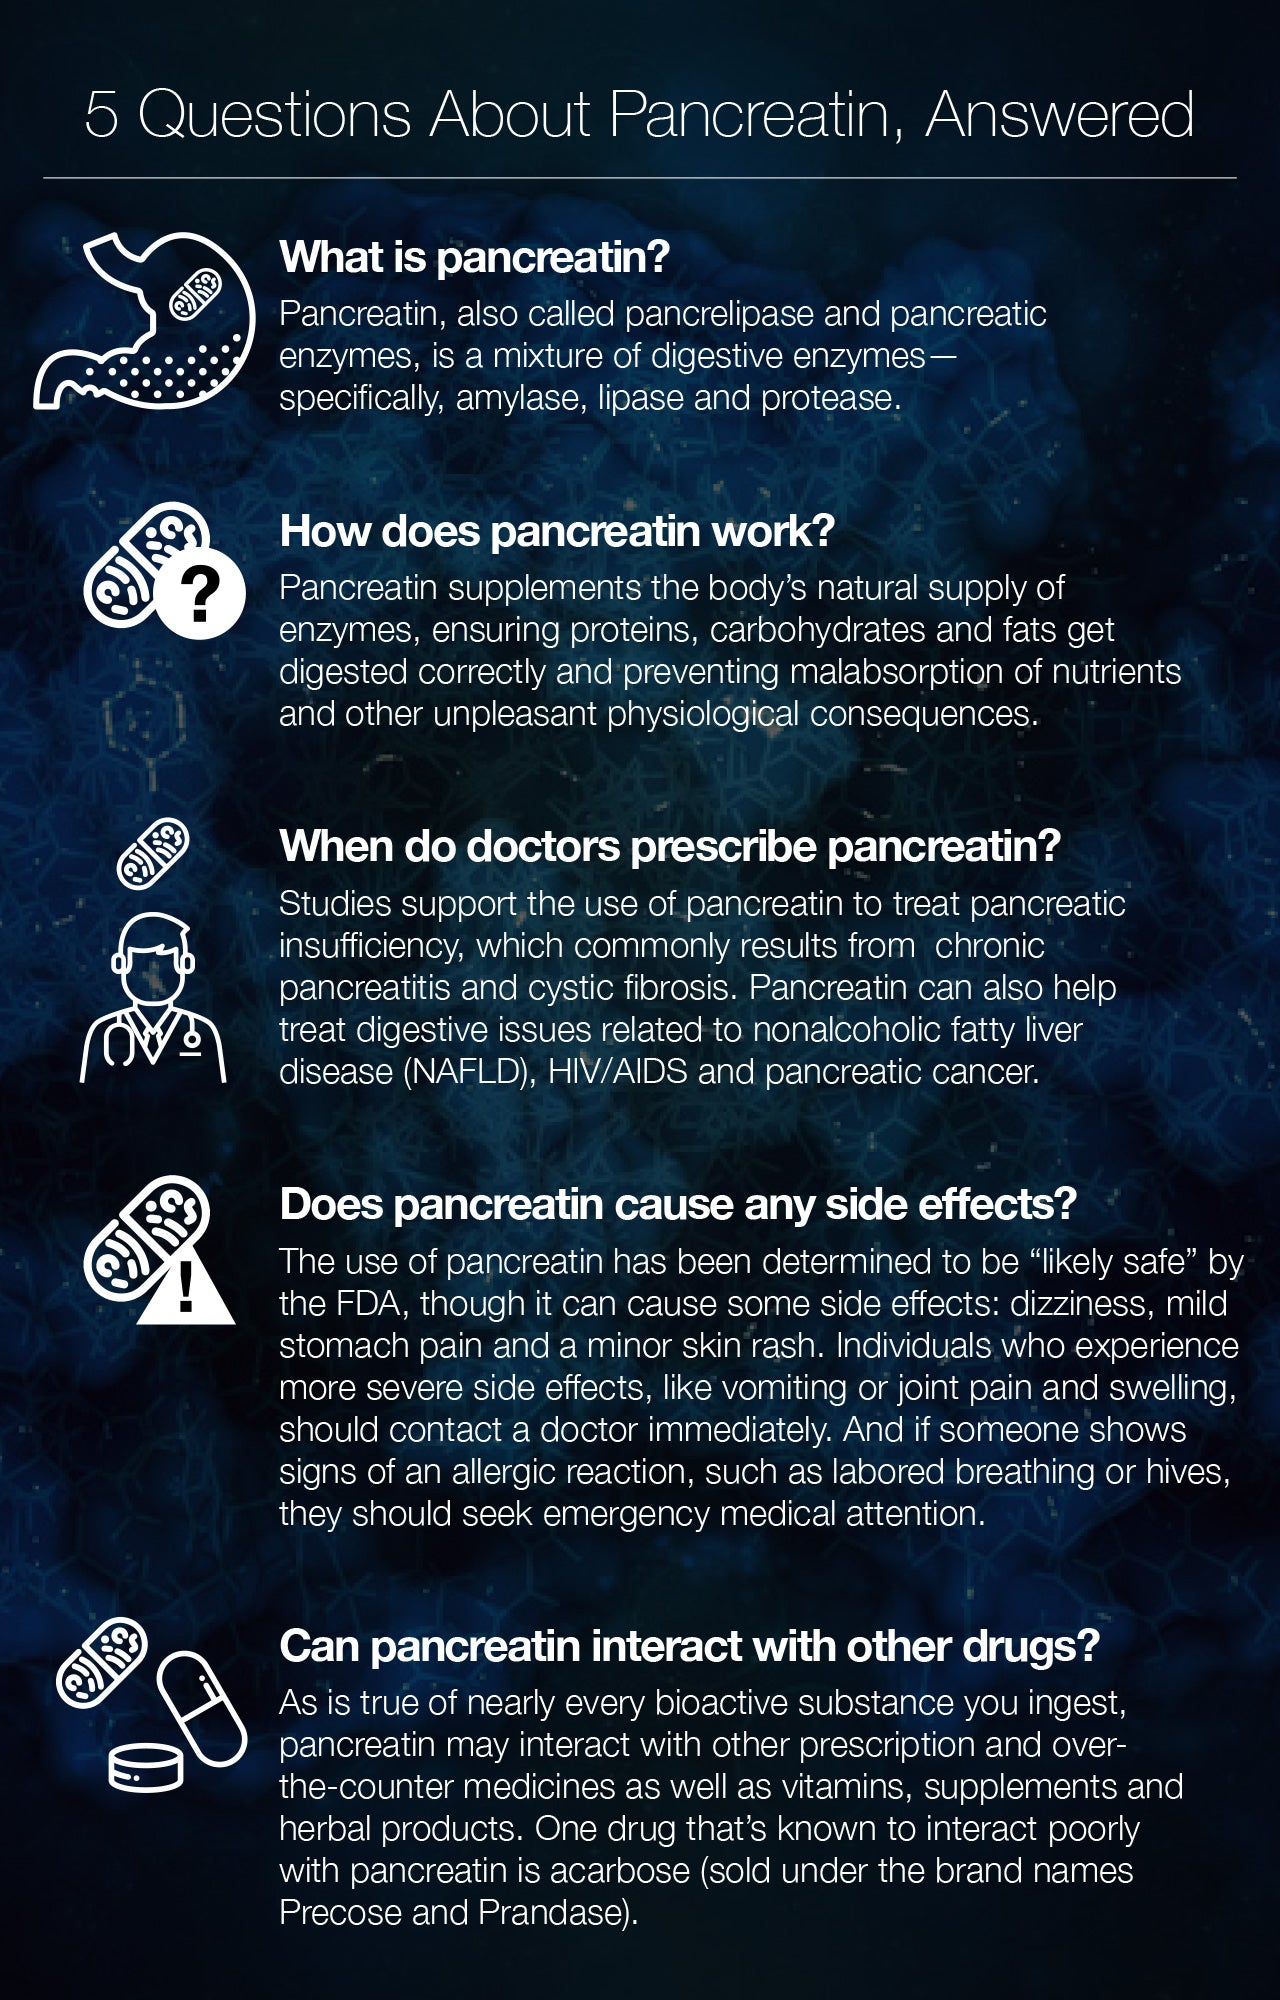 5 Questions About Pancreatin, Answered